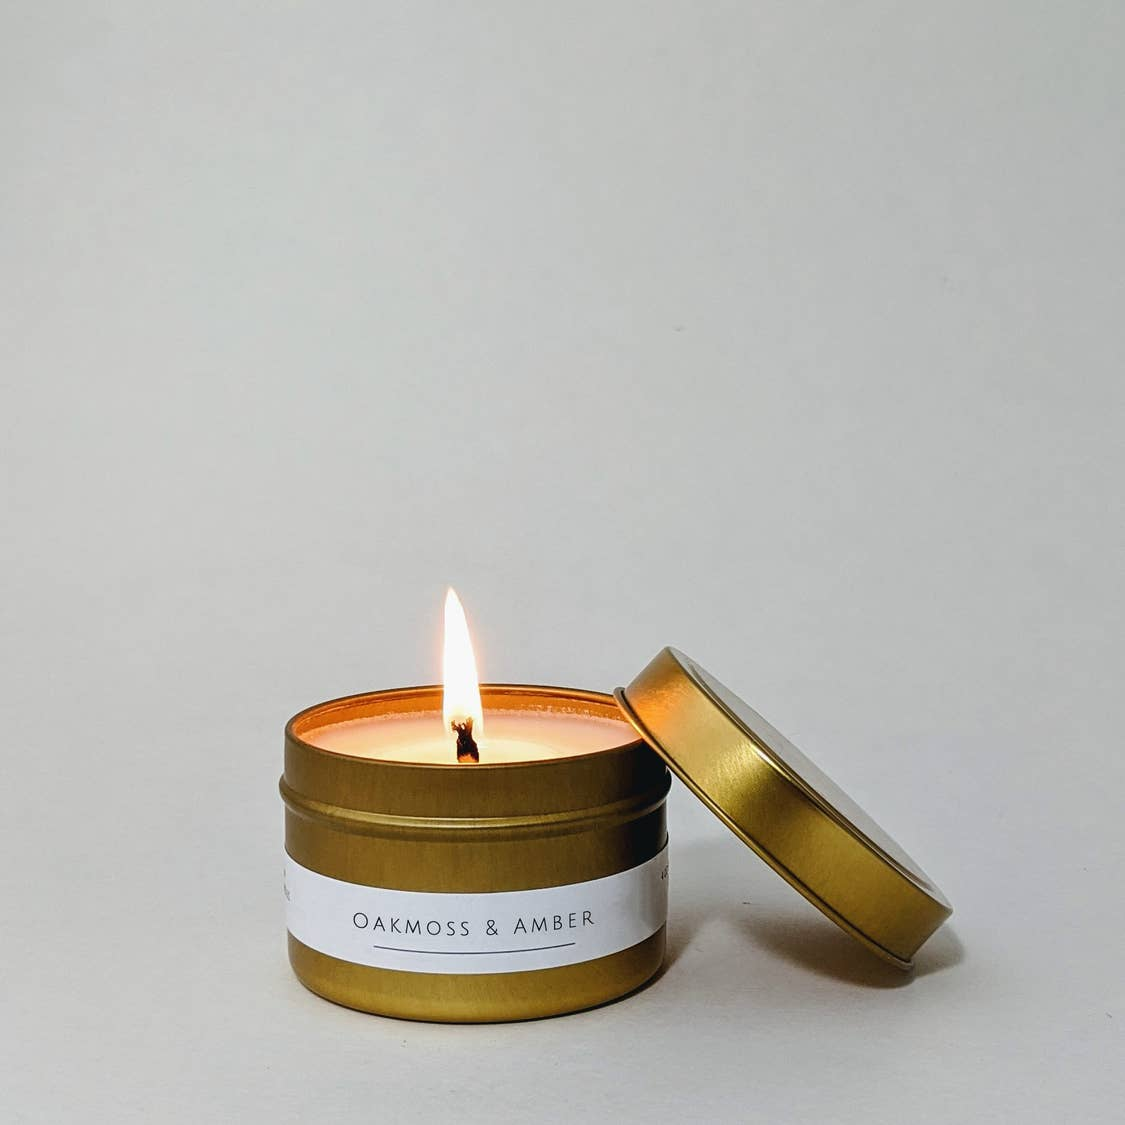 Oakmoss & Amber Candle 4oz